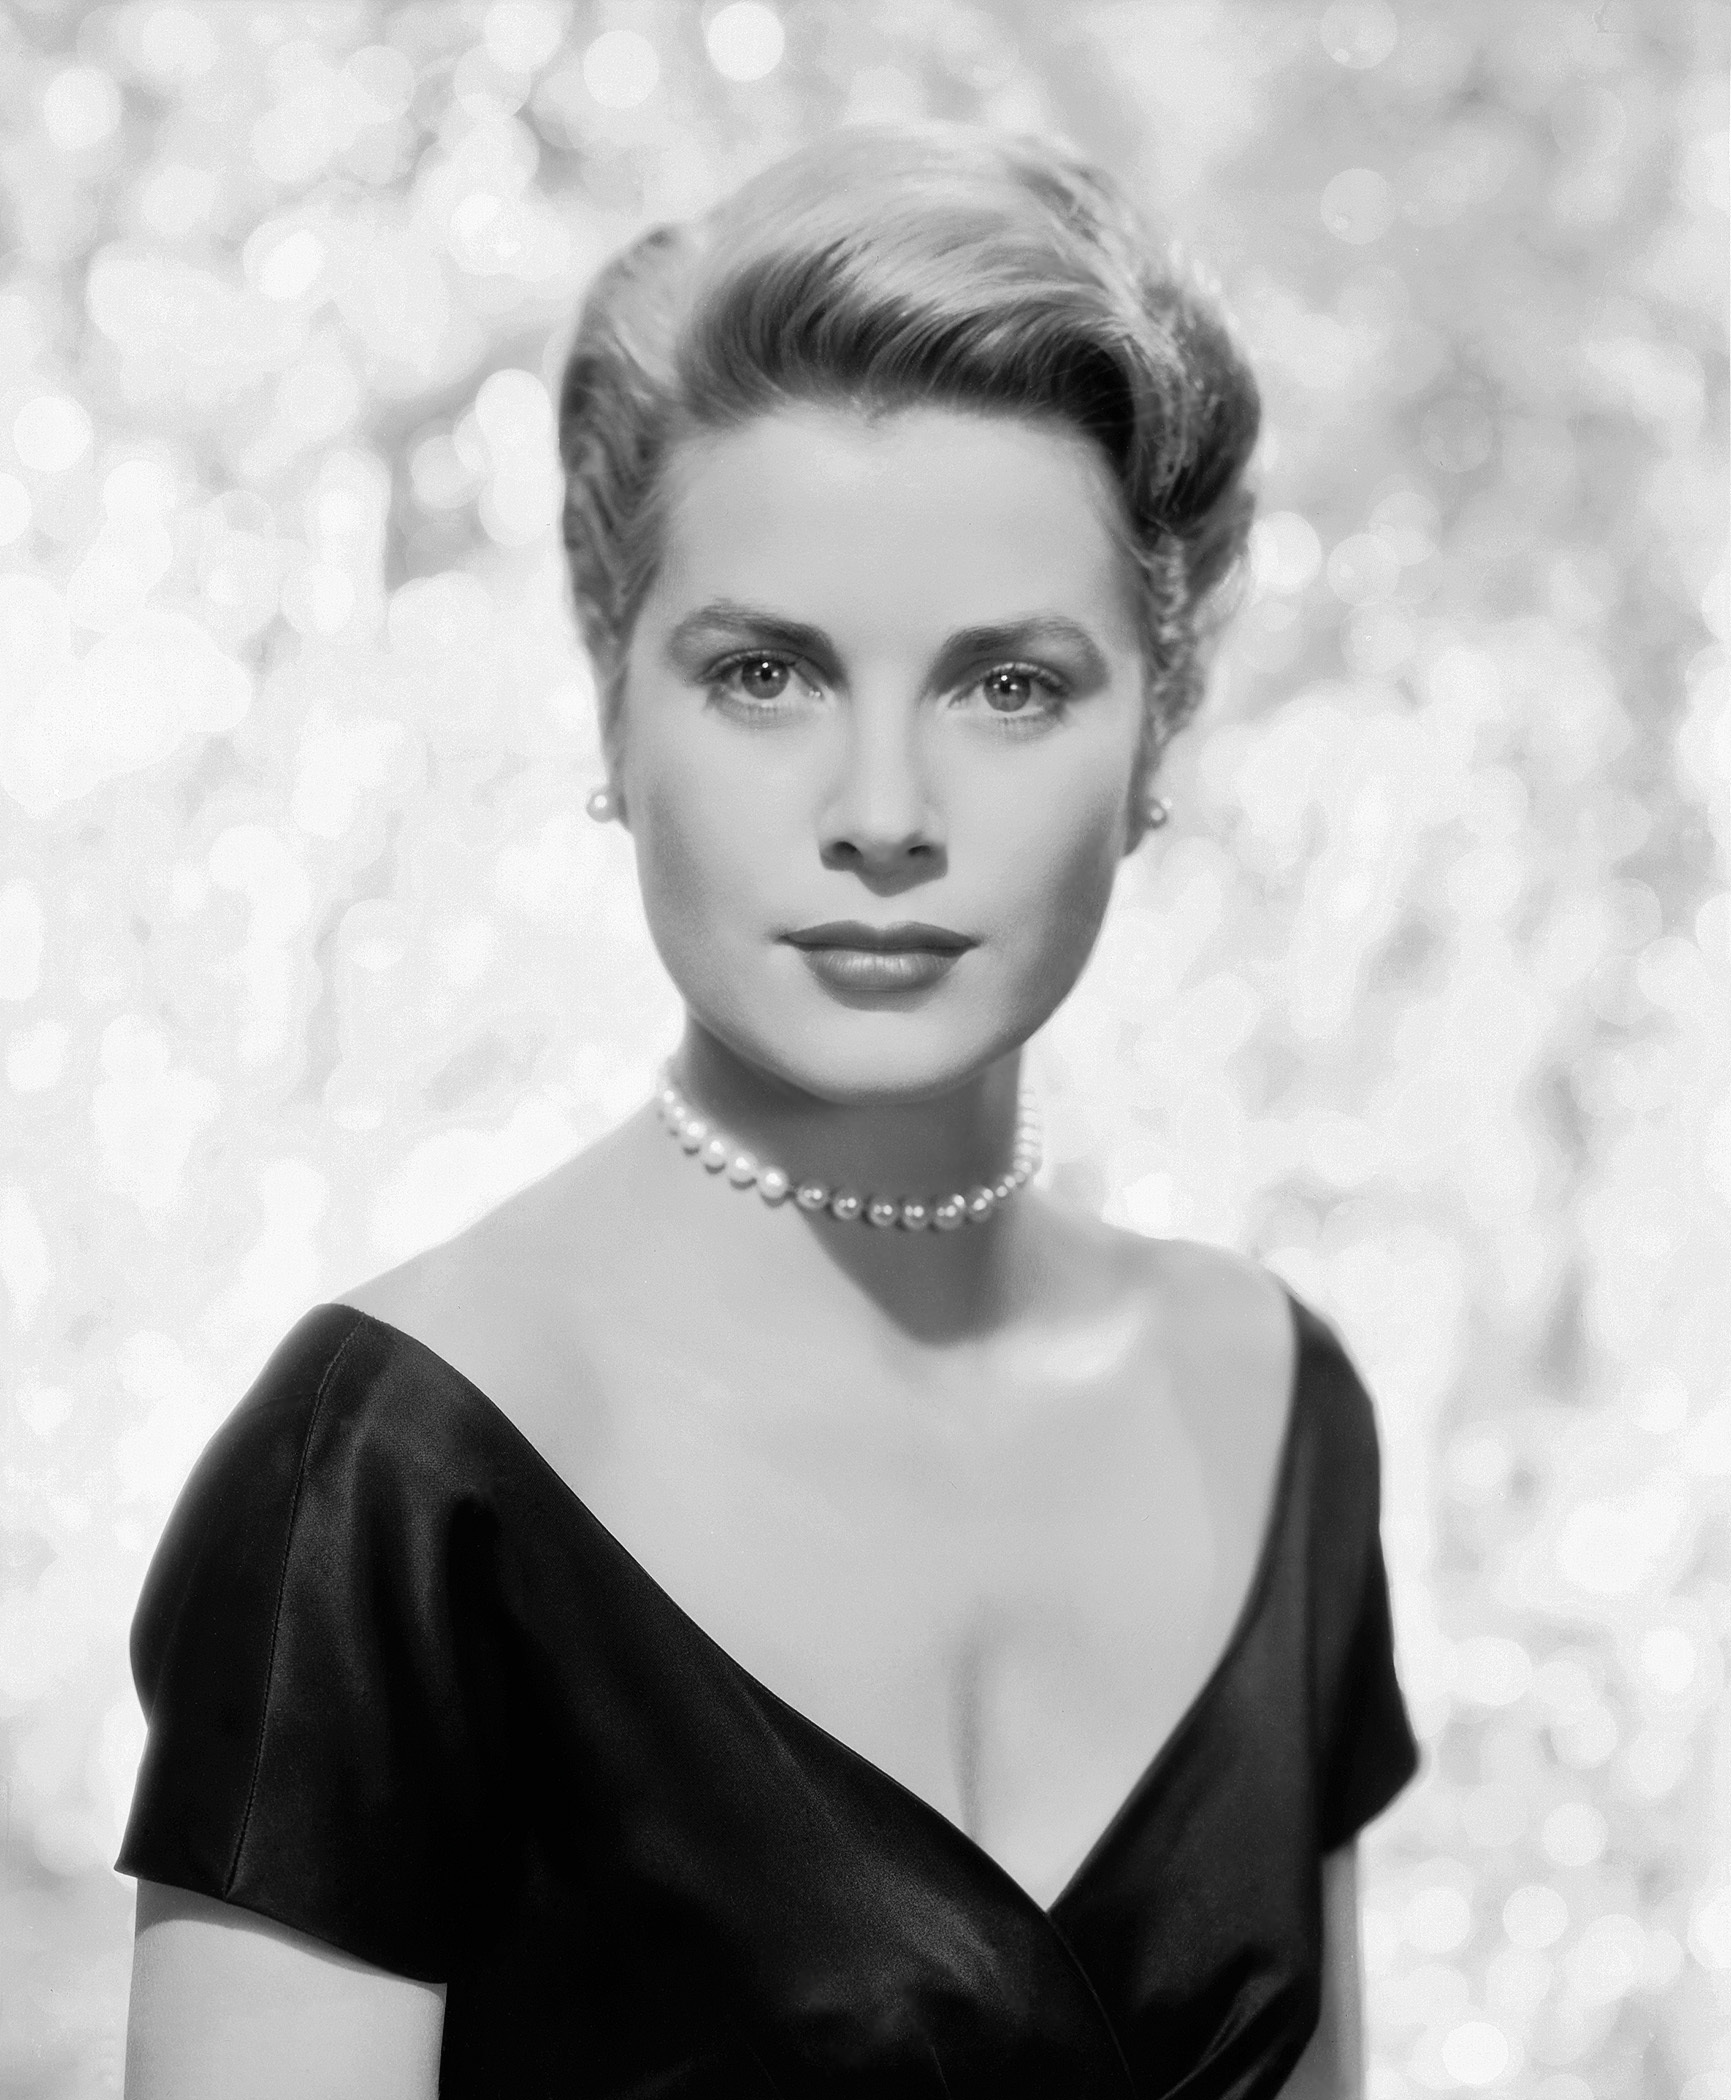 1950s hairstyles on pinterest grace kelly 1950s hairstyles and pin curls. Black Bedroom Furniture Sets. Home Design Ideas